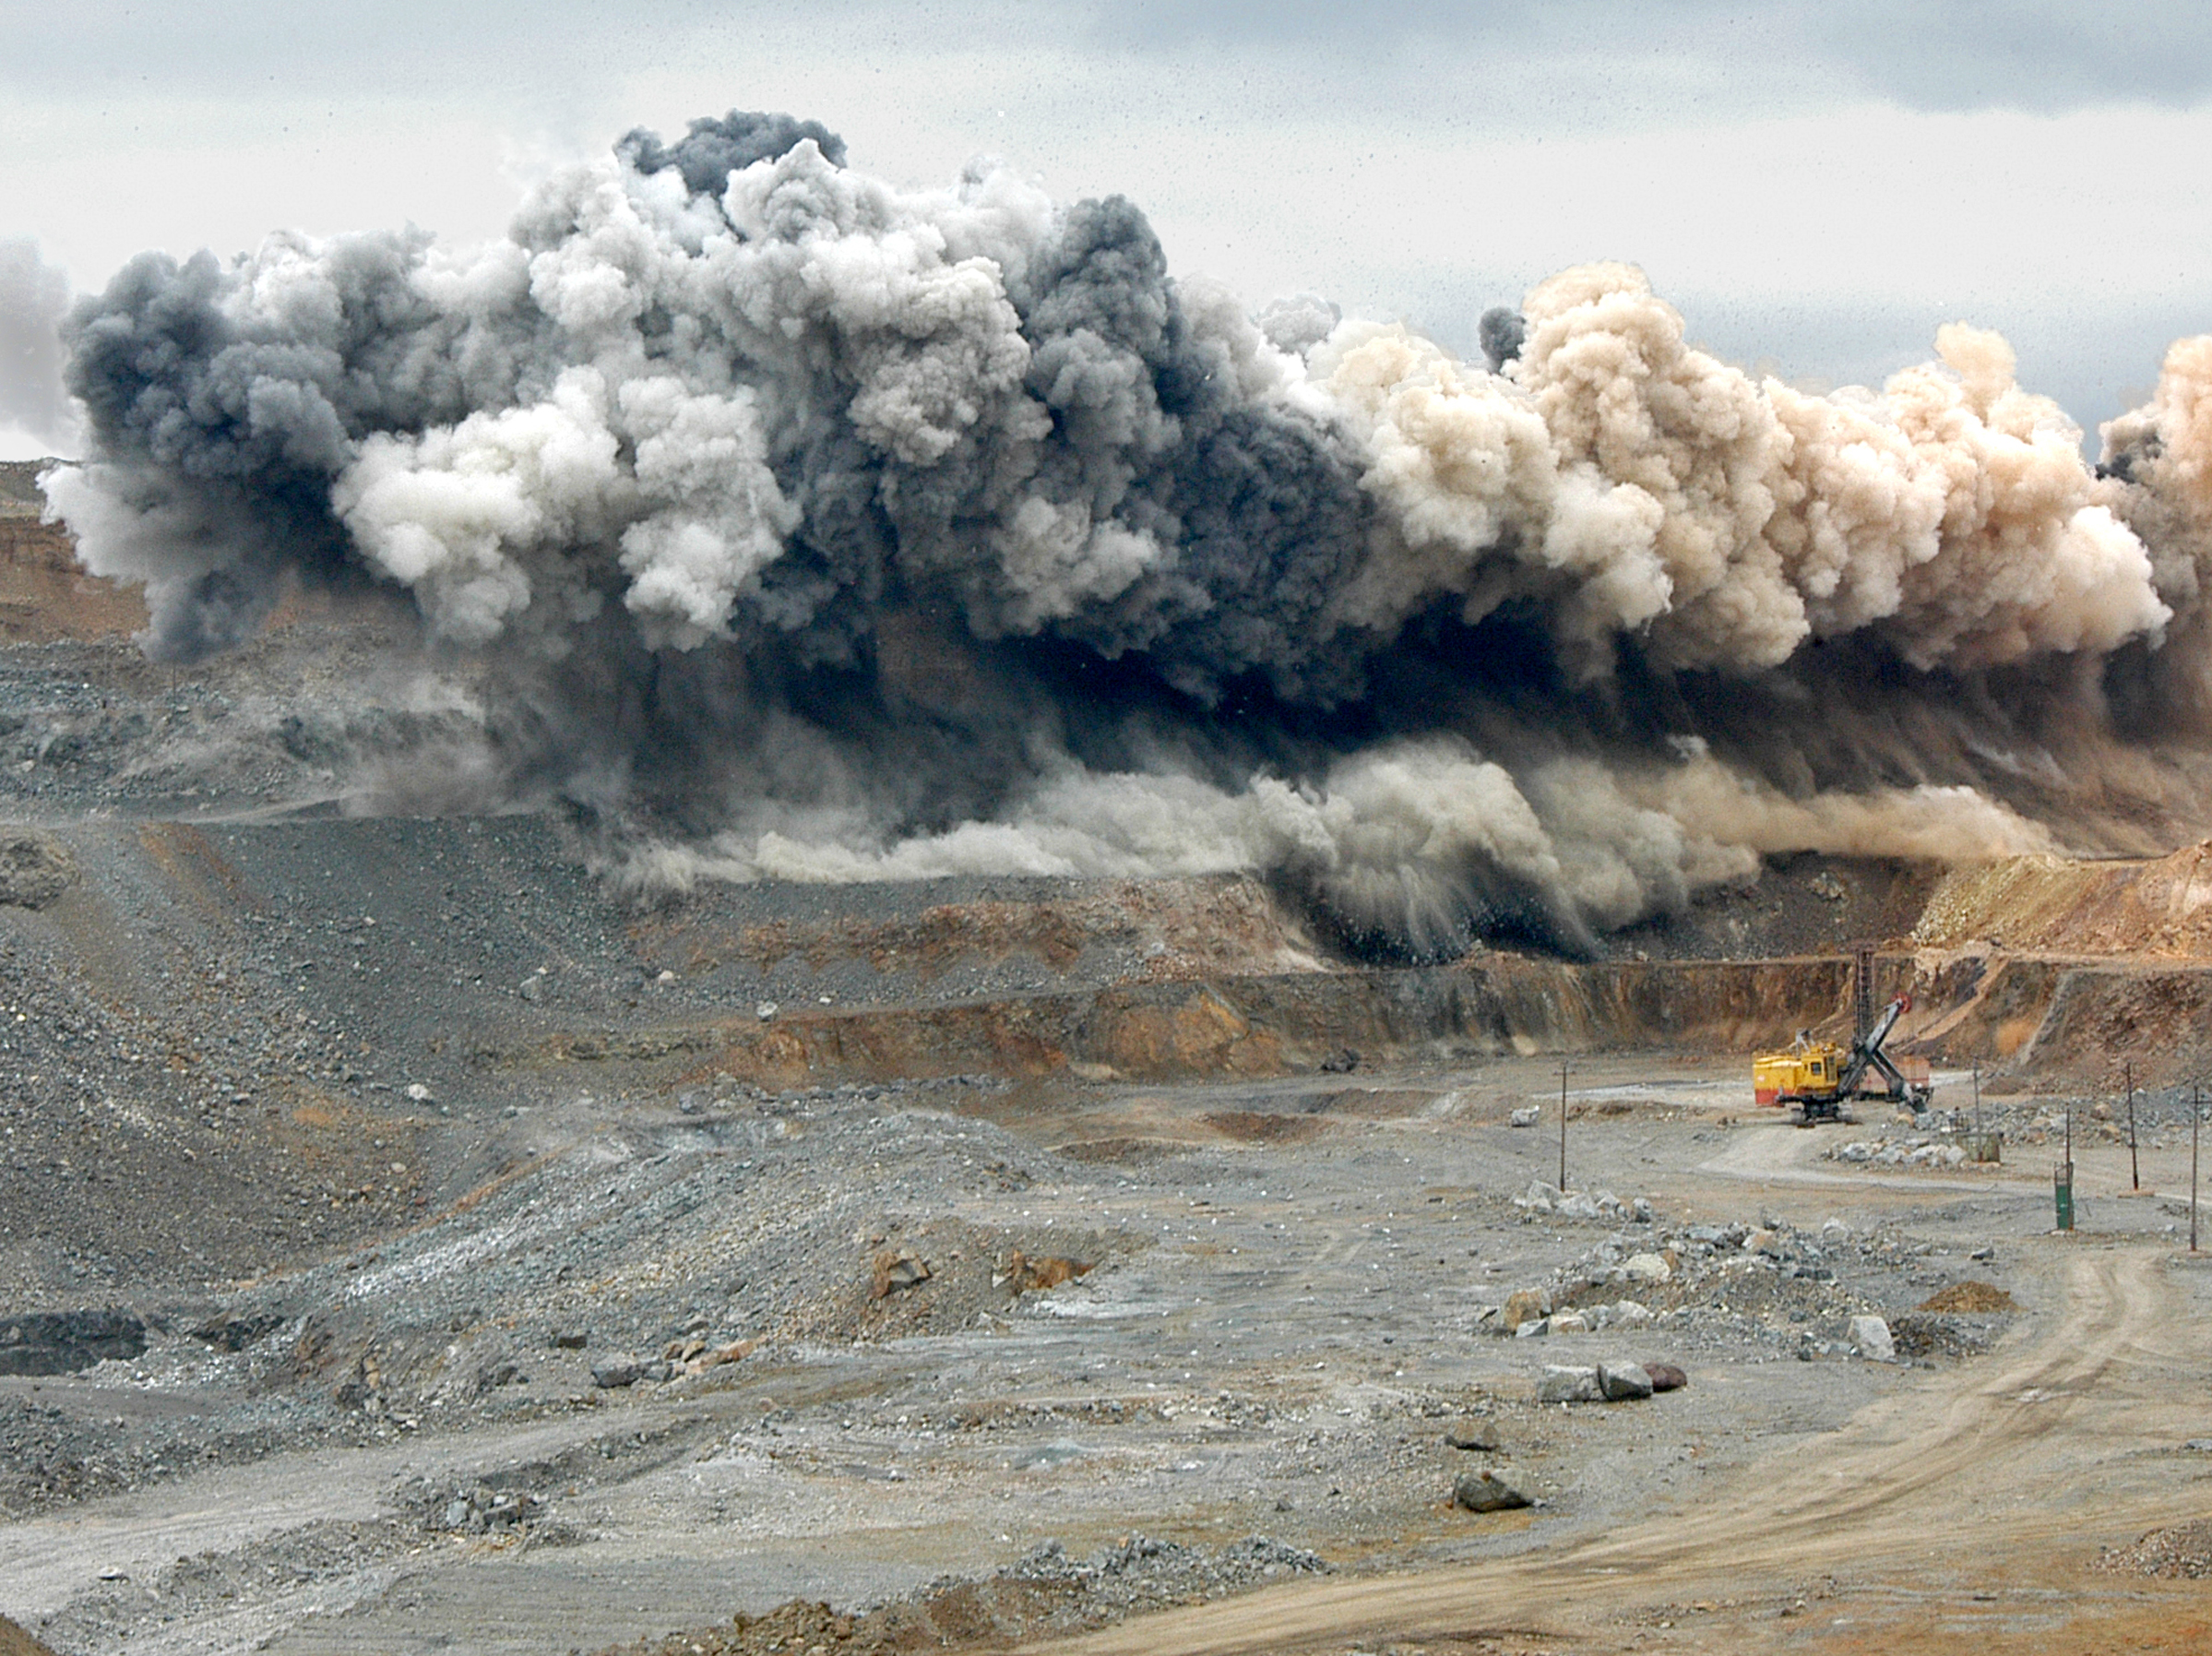 Blasting Operations At The Open Pit Minex Russia 2013